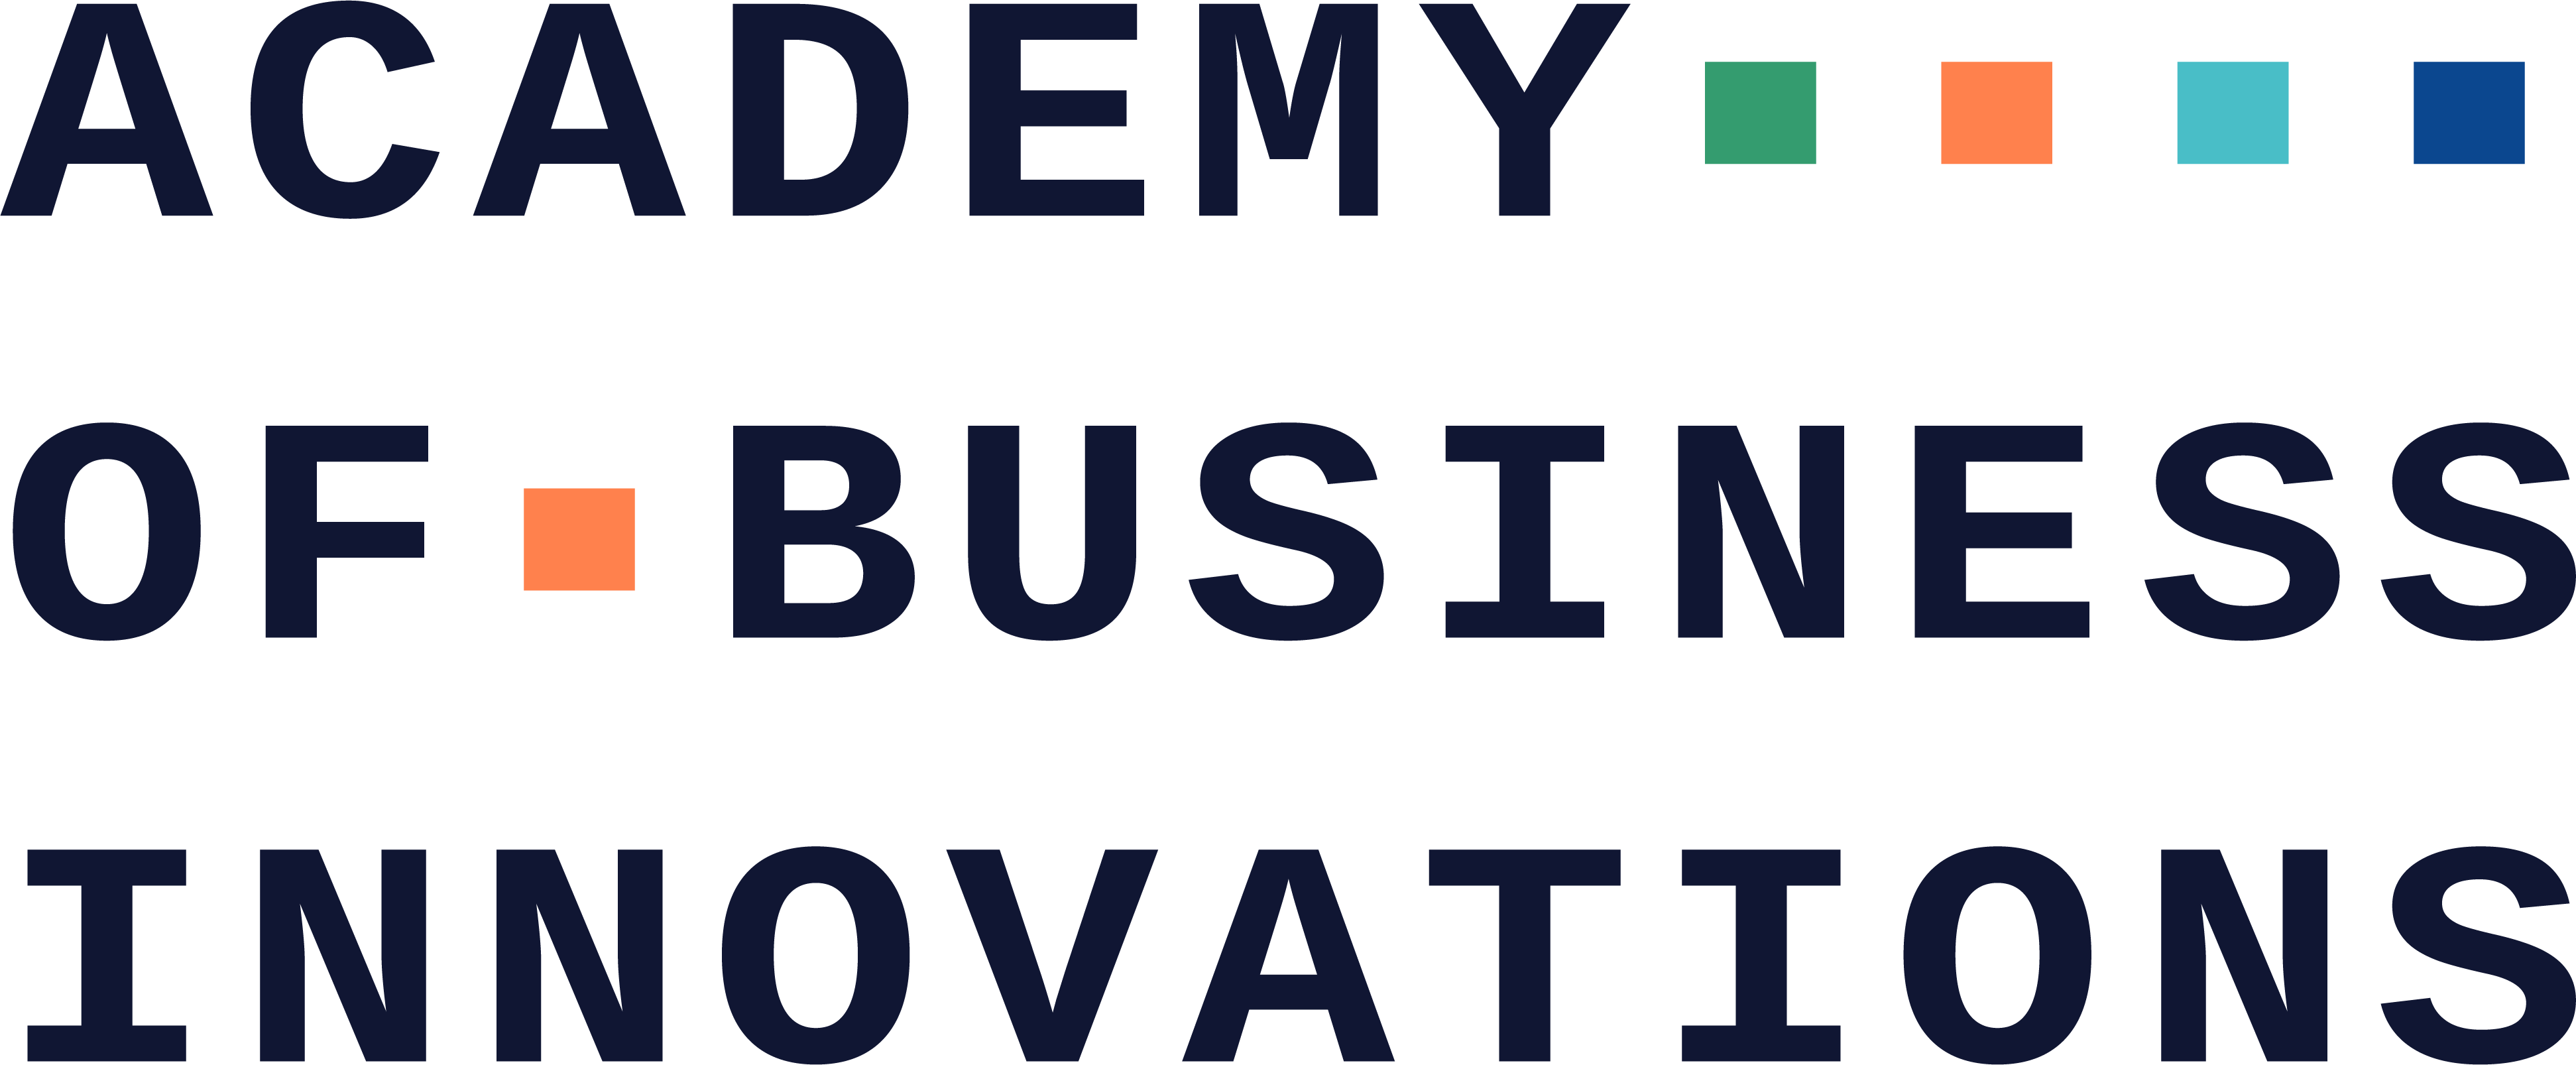 Academy of Business Innovations